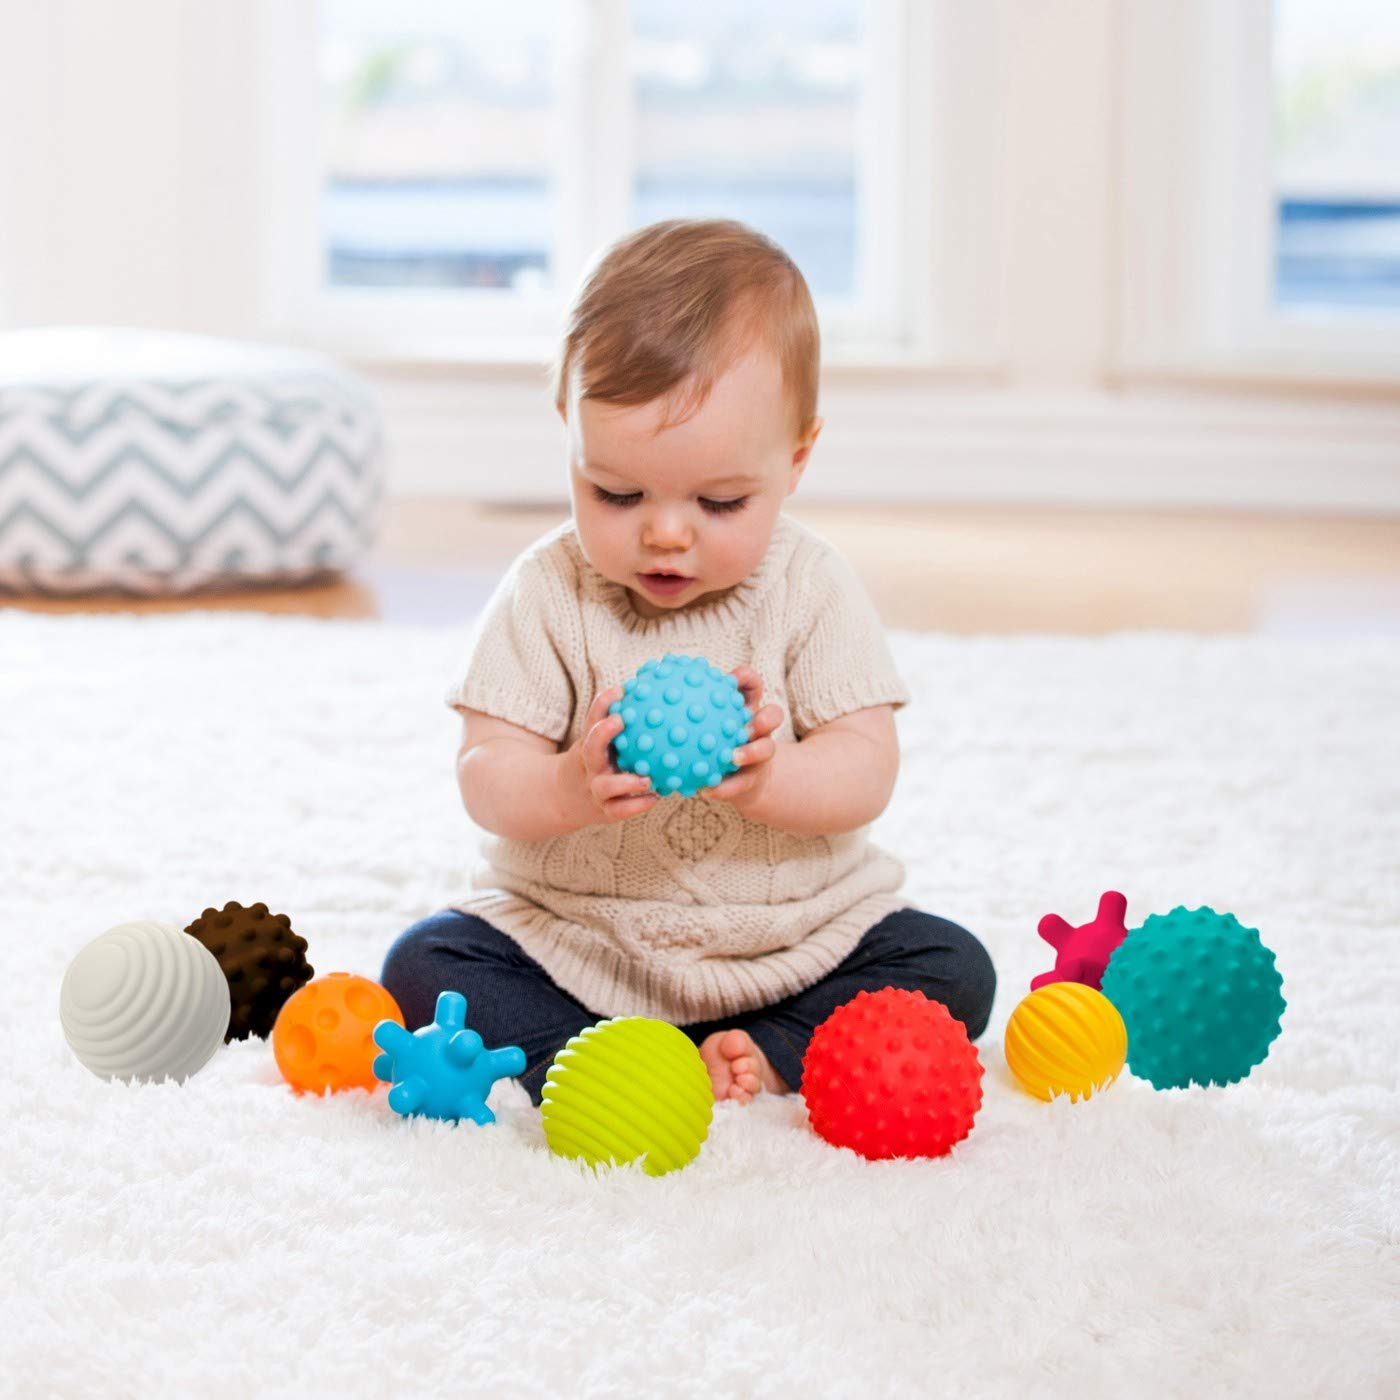 Infantino Go GaGa Textured Ball 10-Piece Set